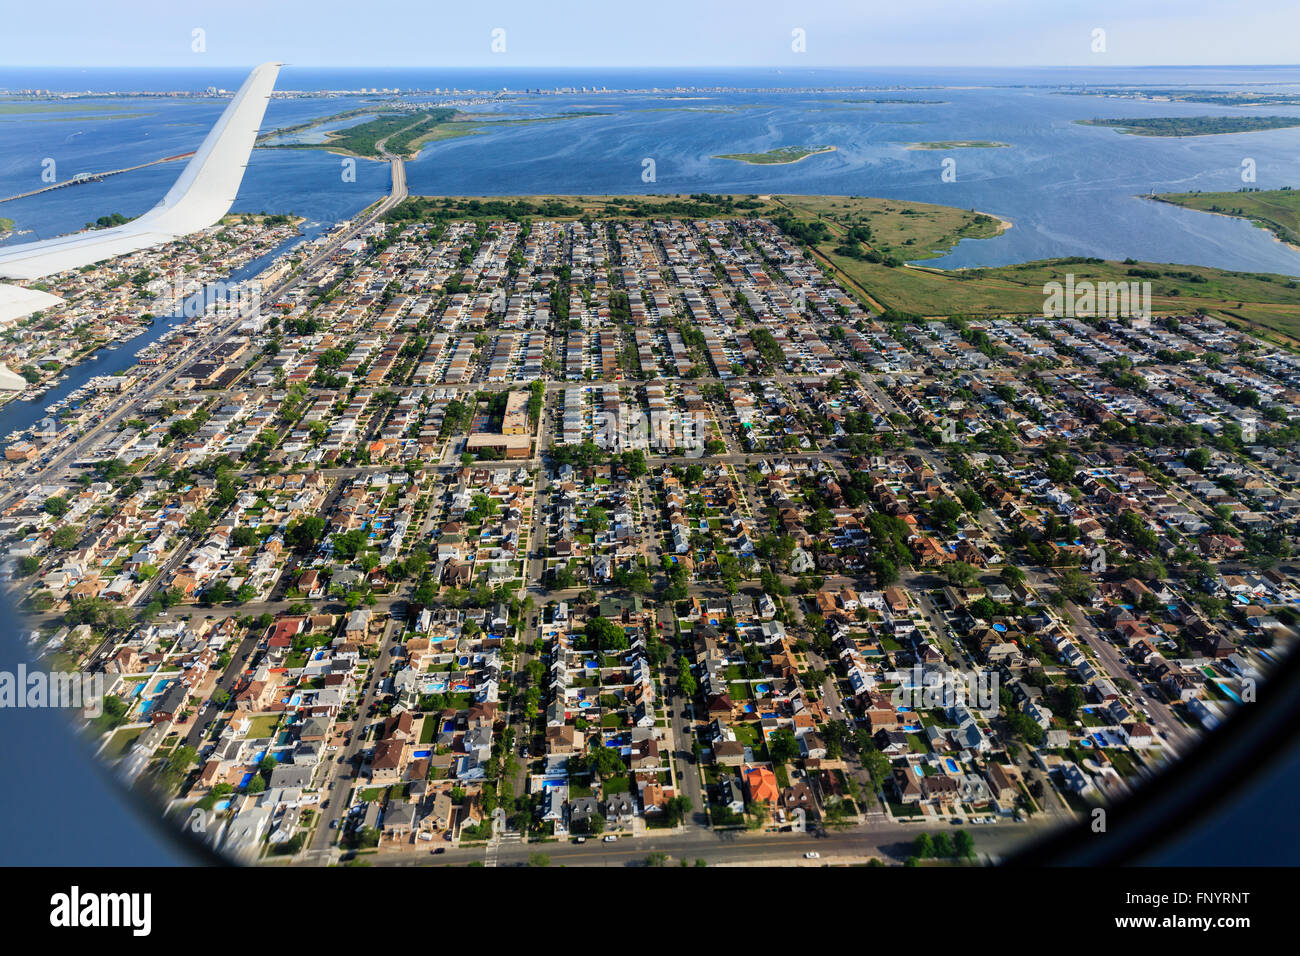 Aerial view of urban sprawl of New York City from approach to JFK airport - Stock Image